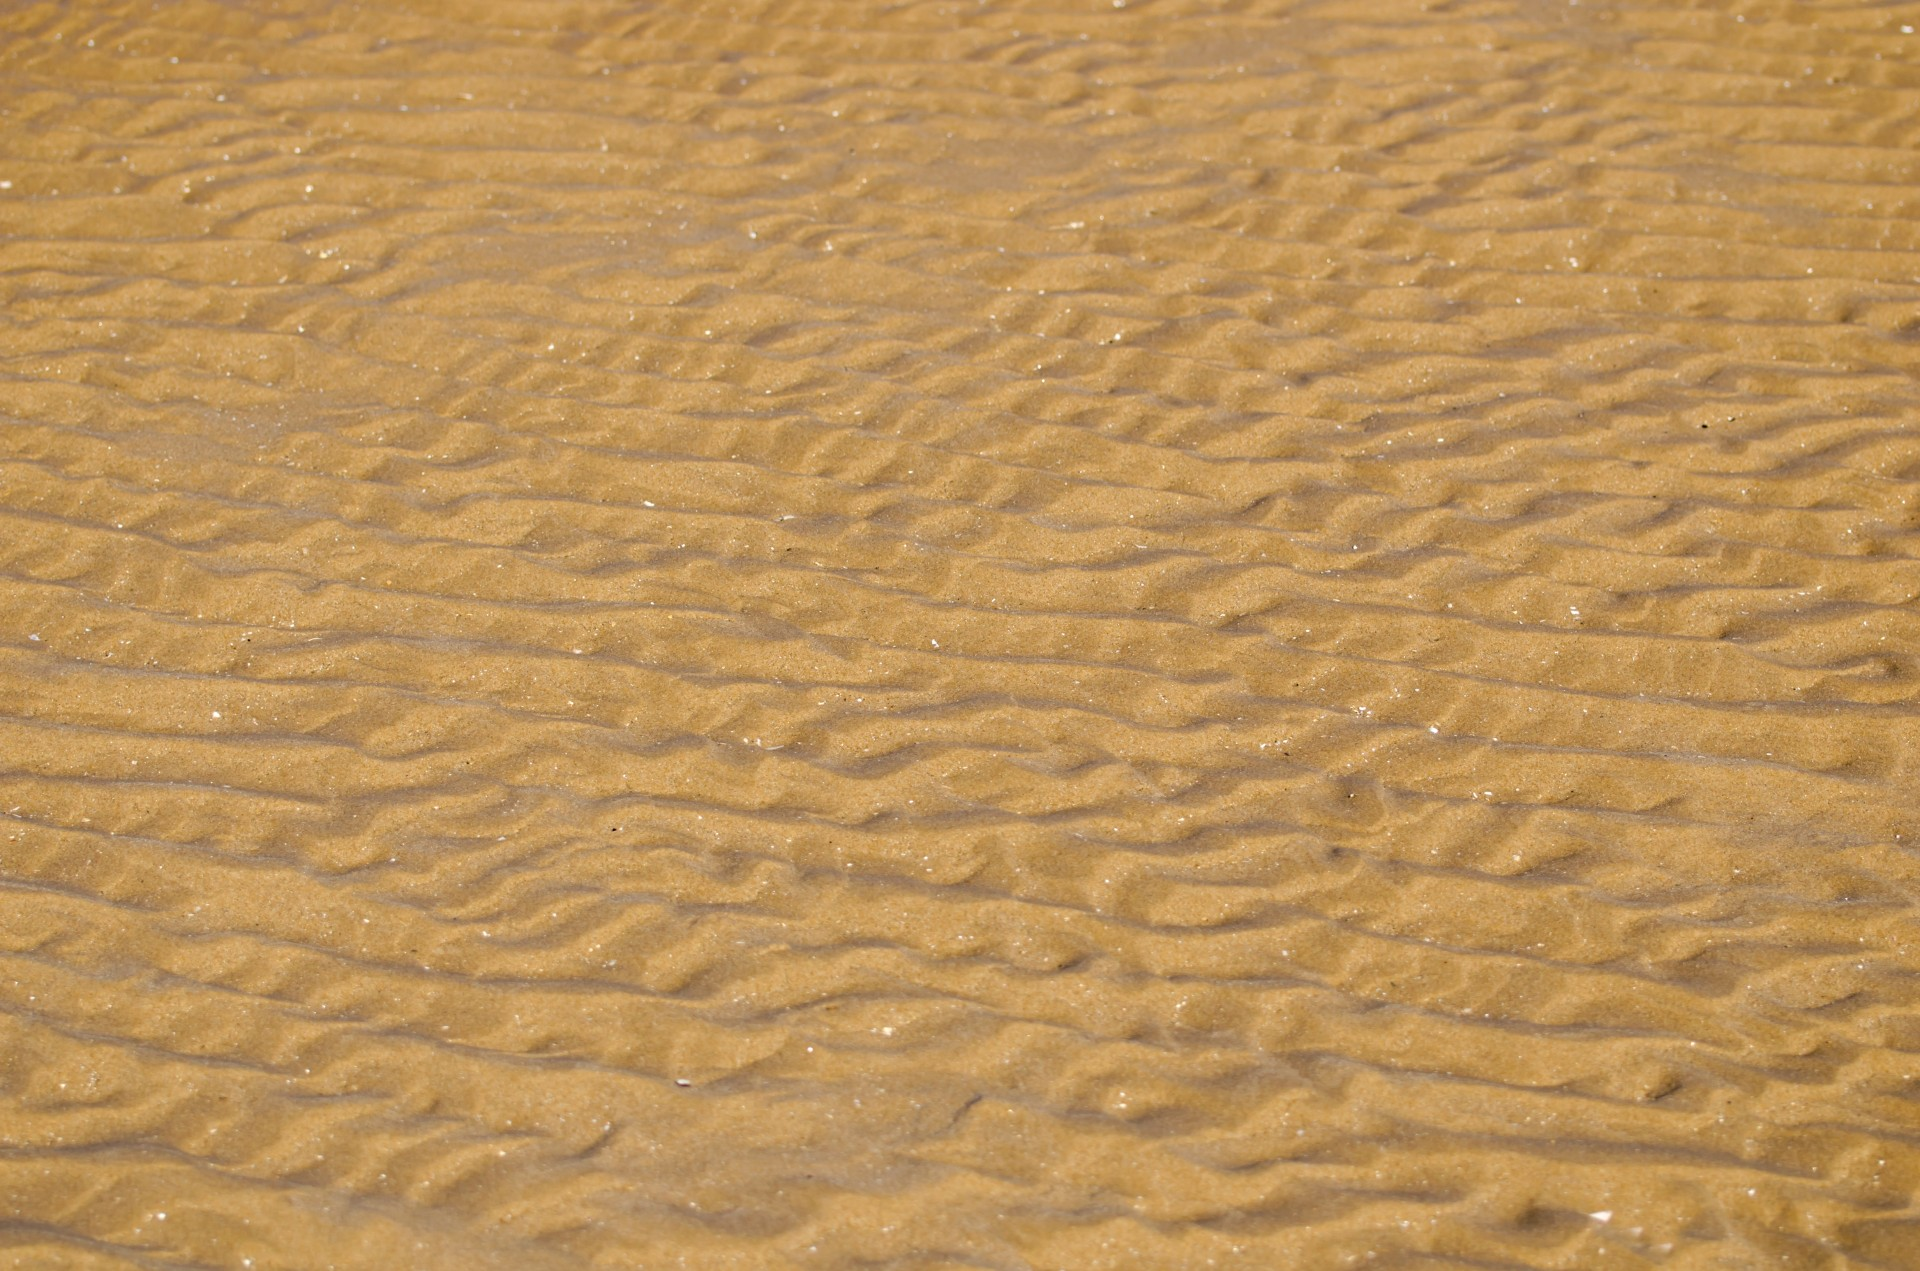 pictures of sand wallpapers high quality download free